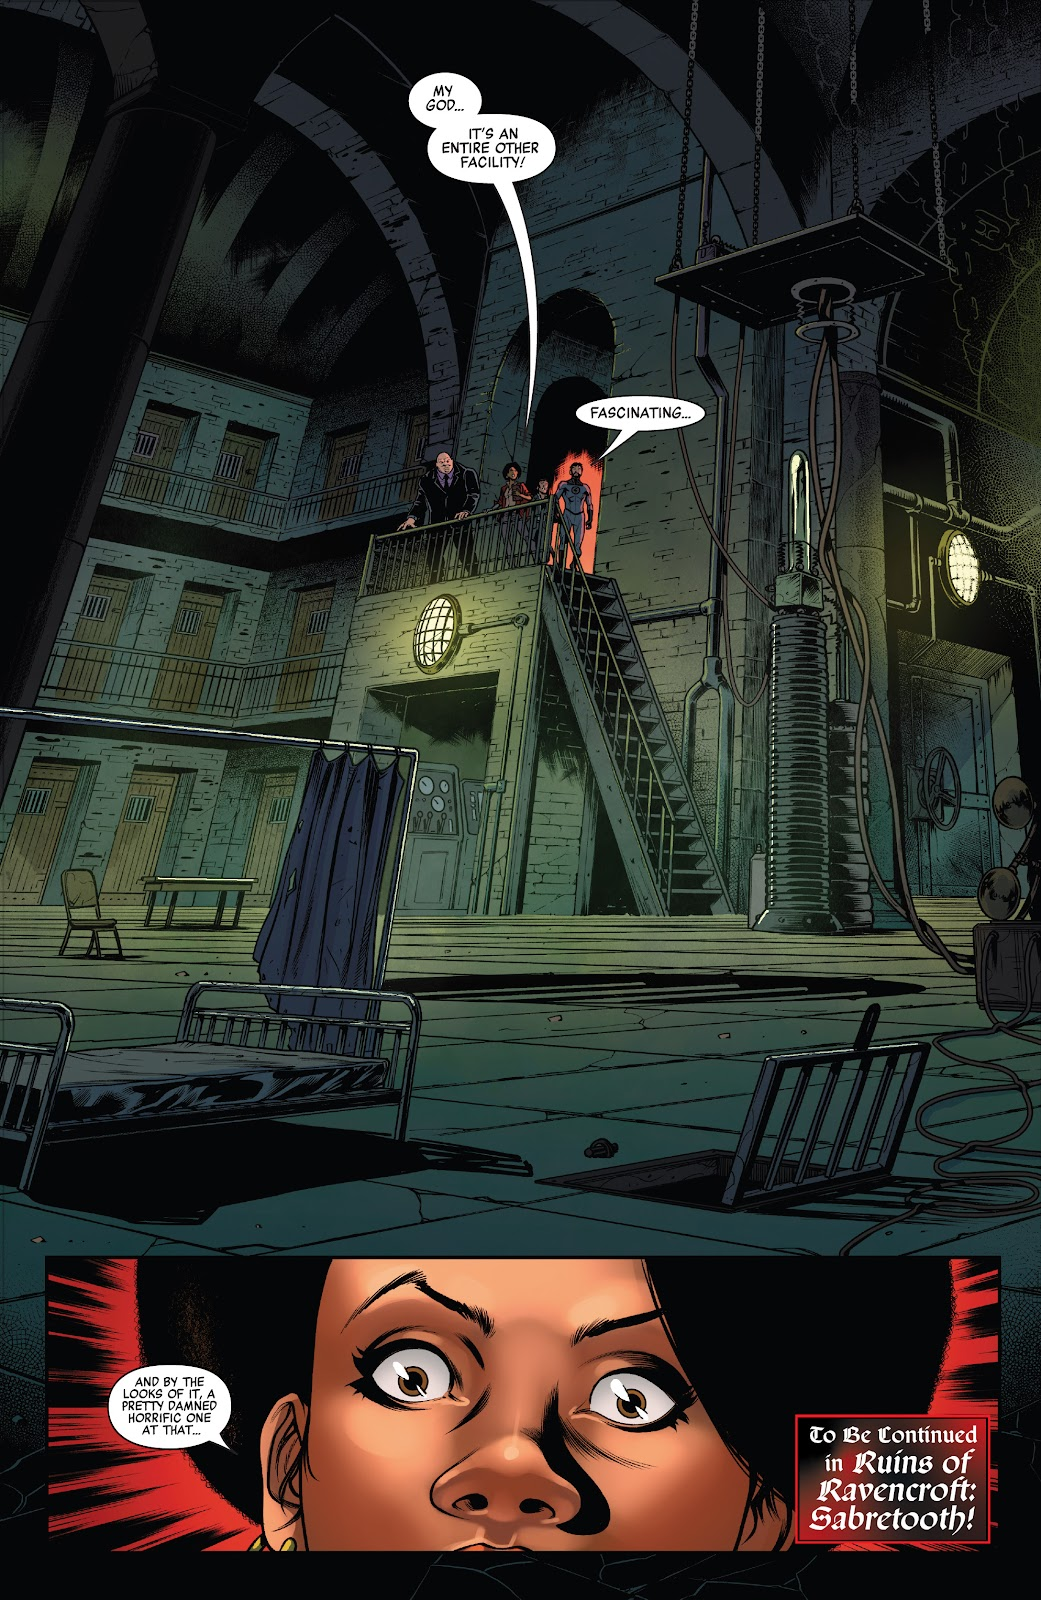 Read online Ruins Of Ravencroft comic -  Issue # Carnage - 32